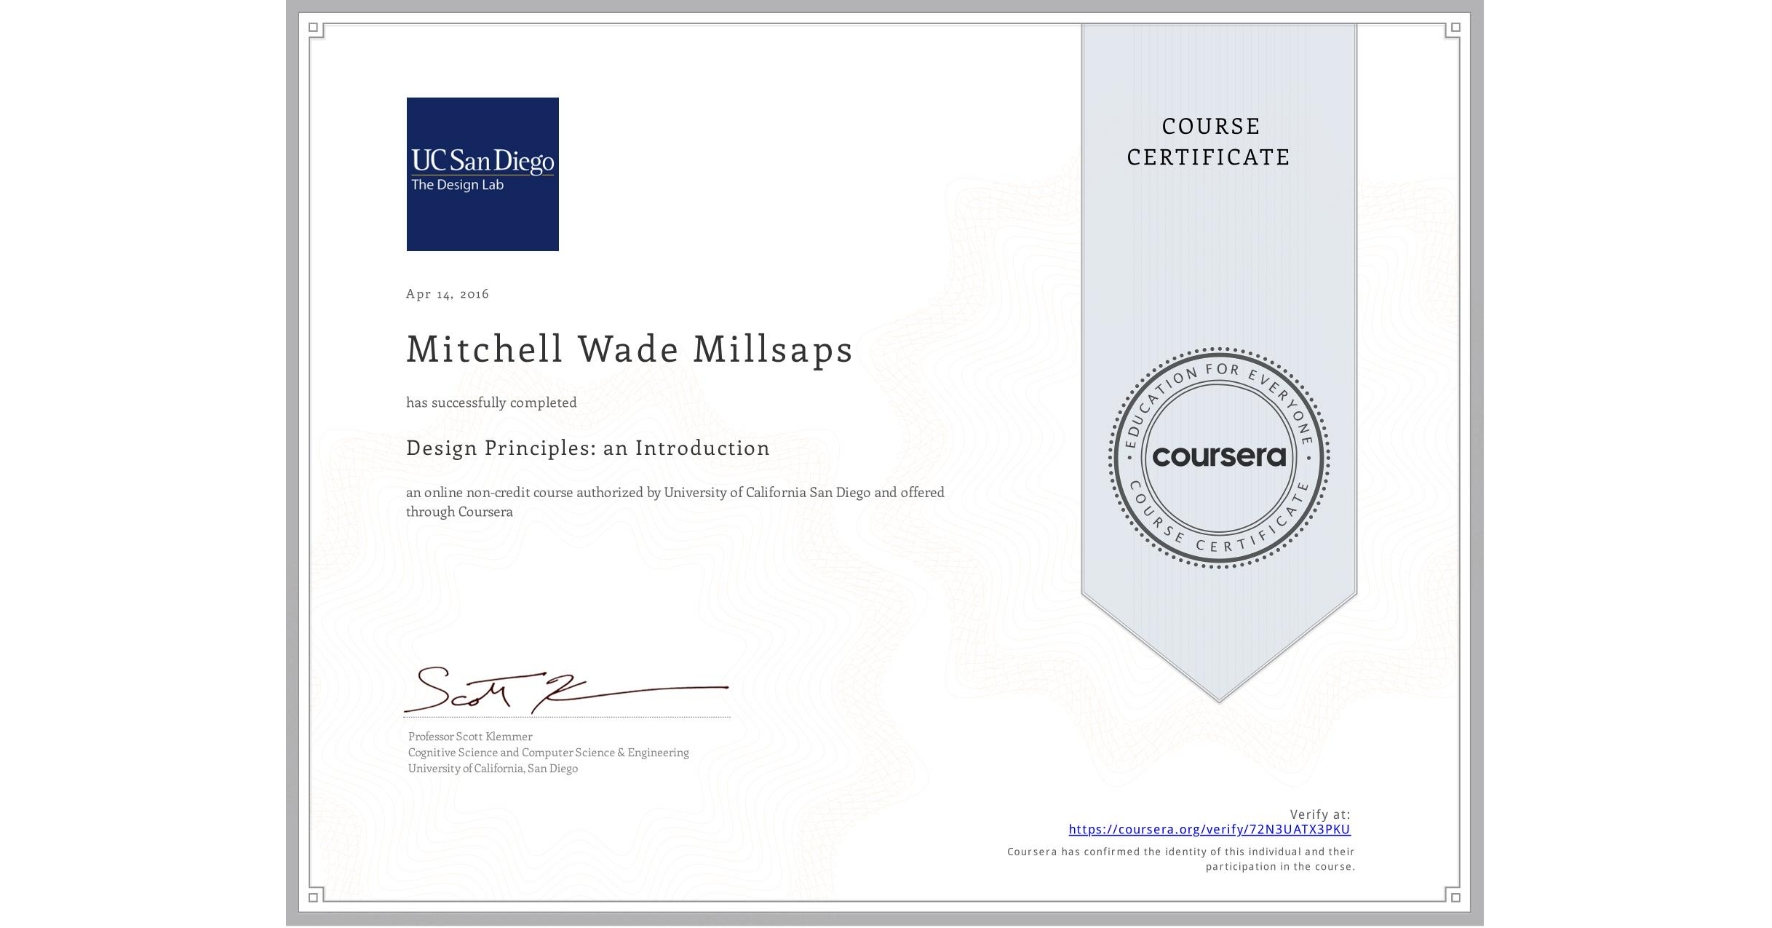 View certificate for Mitchell Wade Millsaps, Design Principles: an Introduction, an online non-credit course authorized by University of California San Diego and offered through Coursera